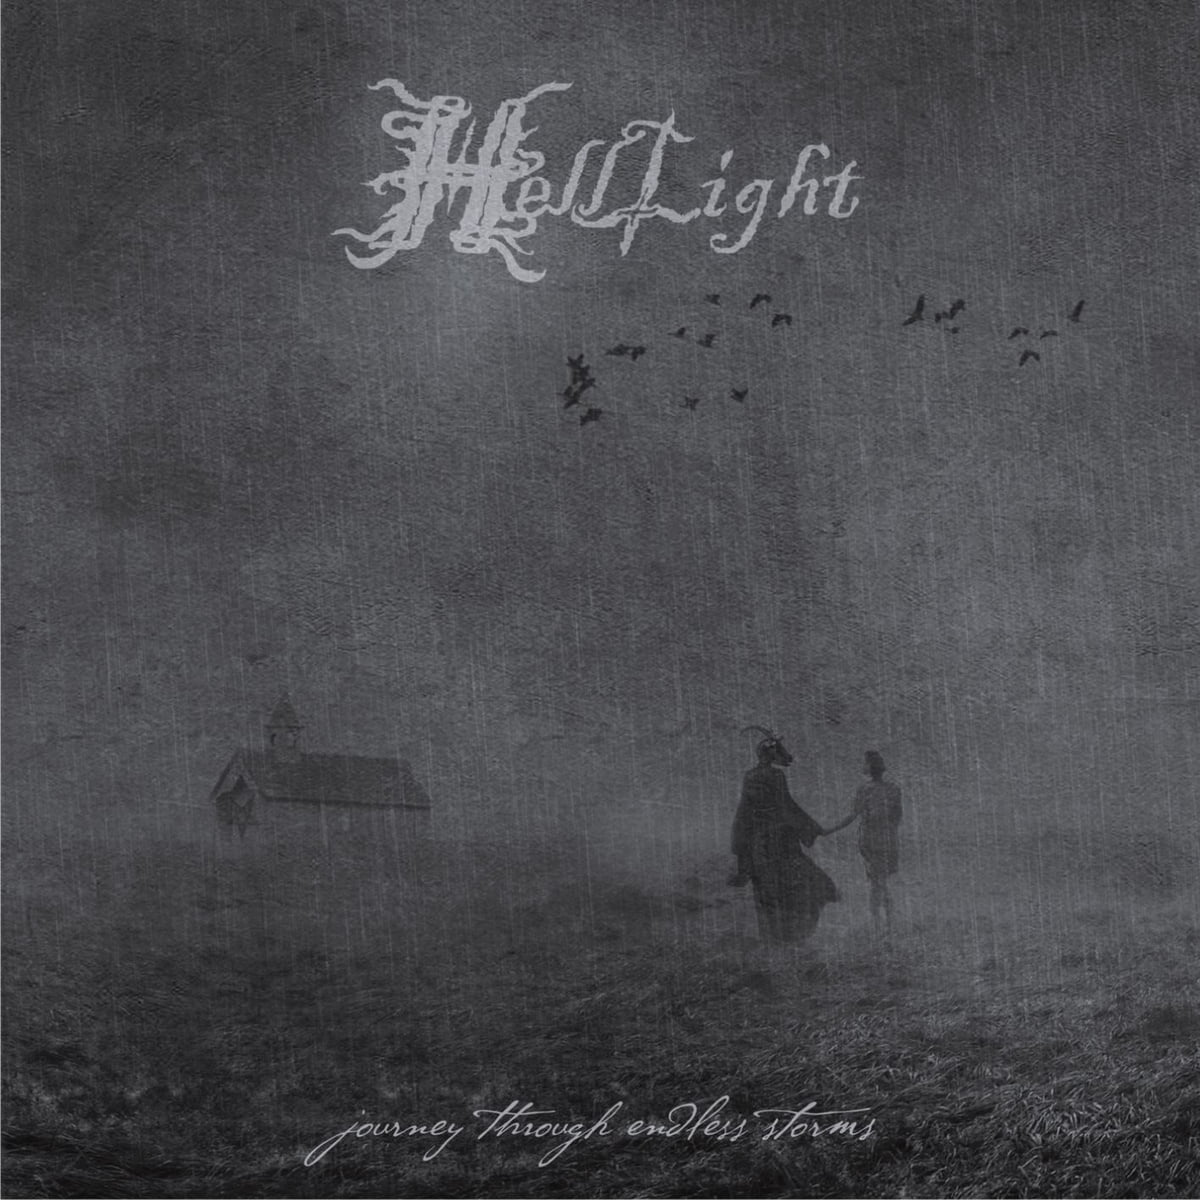 Helllight – Journey Through Endless Storms